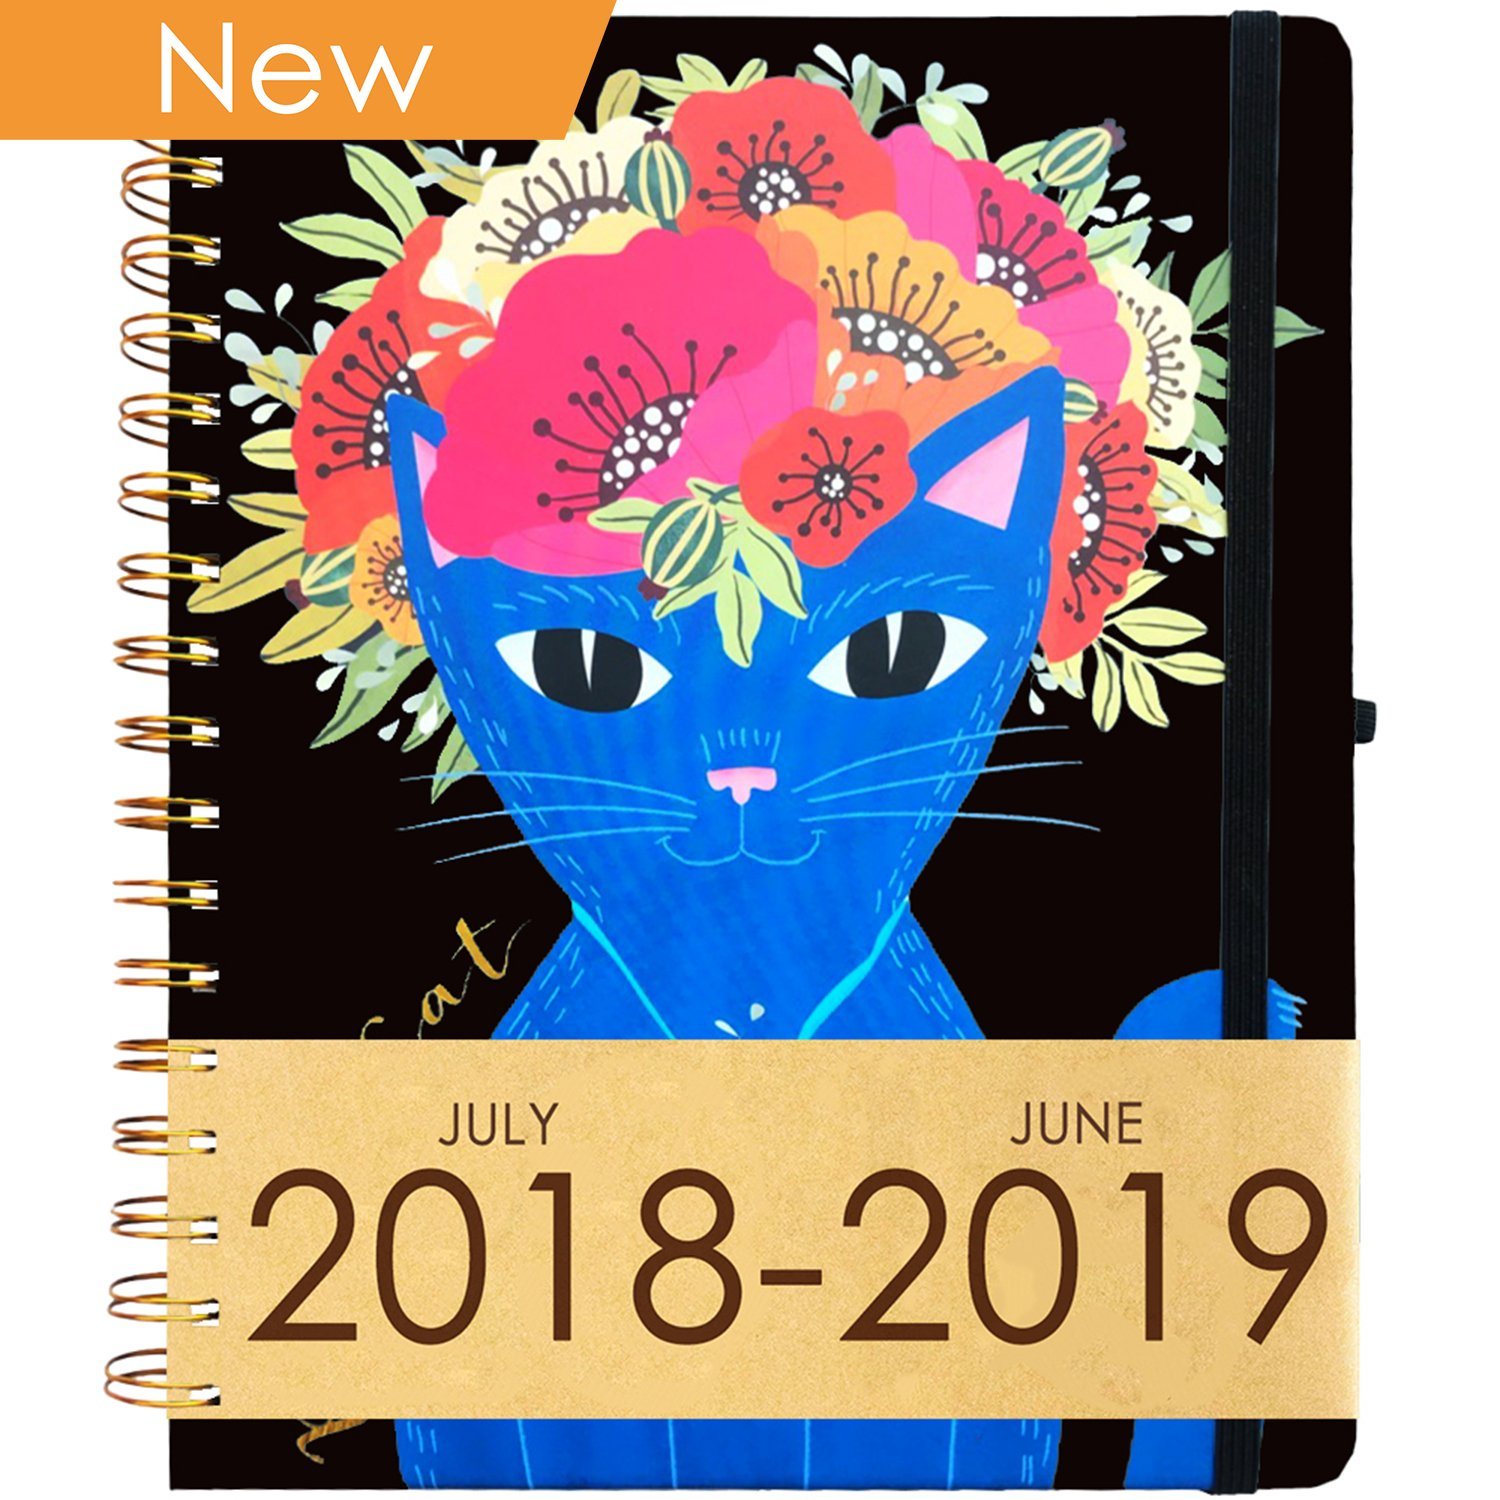 Planner 2018-2019 Academic Calendar Year (Dated Jul 18' - Jun 19') ~ Daily, Weekly, Monthly School Agenda ~ Purse-Size 9''x8'' ~ Boost Productivity for Moms, Teachers & Students ~ Hardcover Notebook